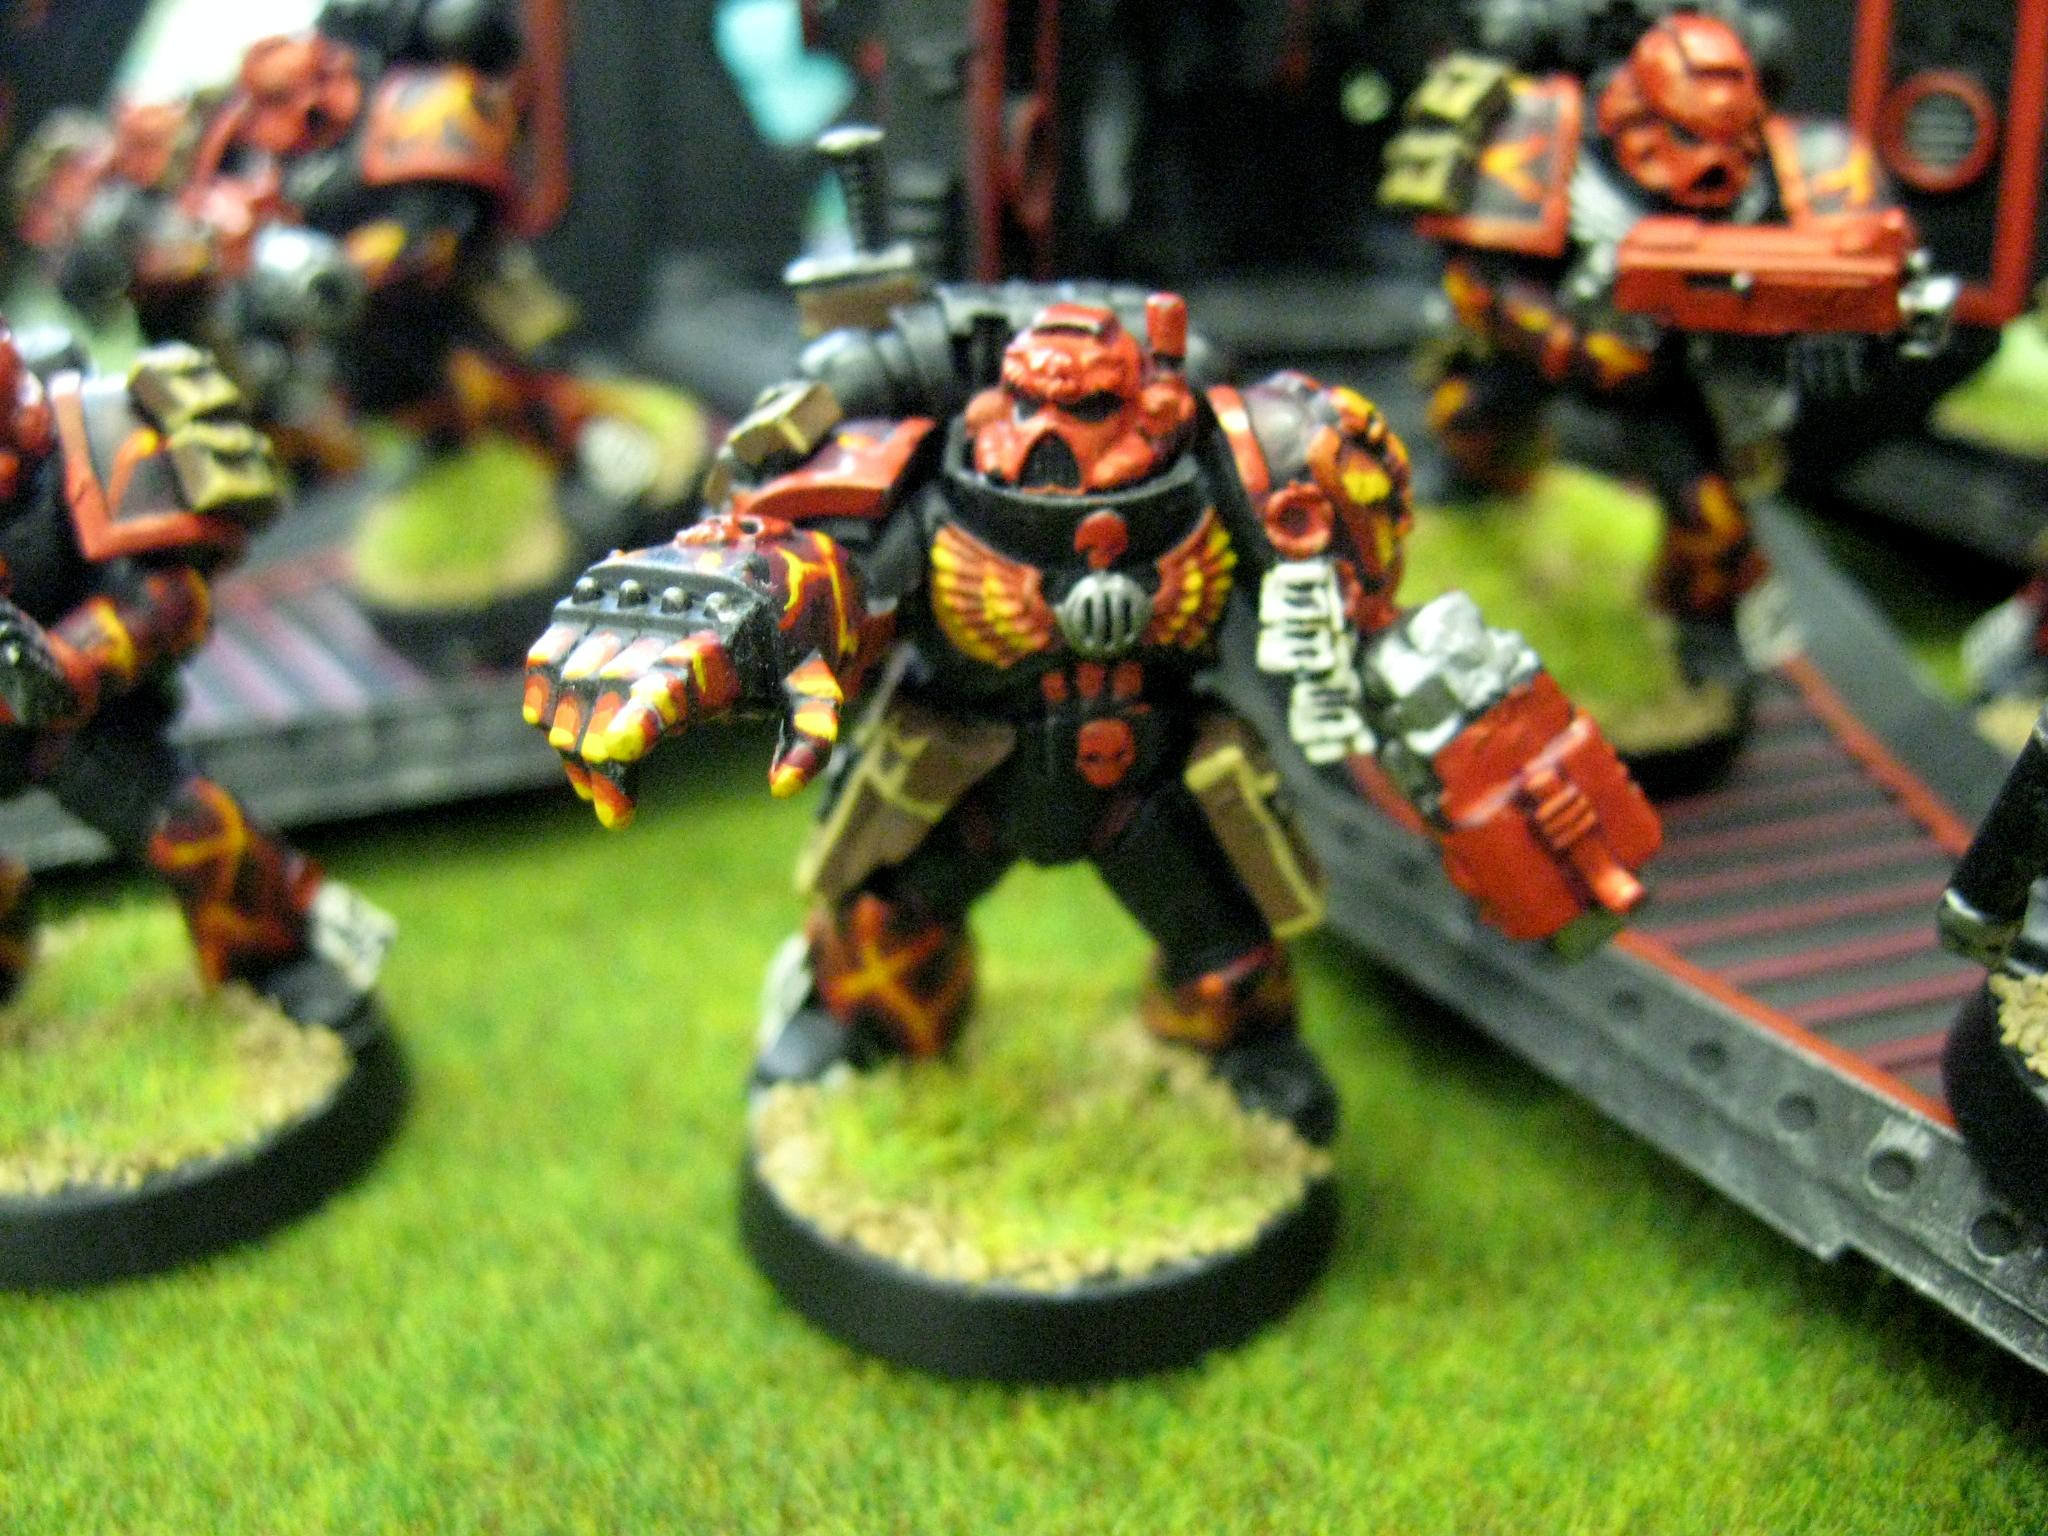 Chapter, Custom, Dreadnought, Land Raider, Predator, Rhino, Salamanders, Seargent, Space Marines, Sternguard, Tactical, Terminator Armor, Vanilla, Vulkan